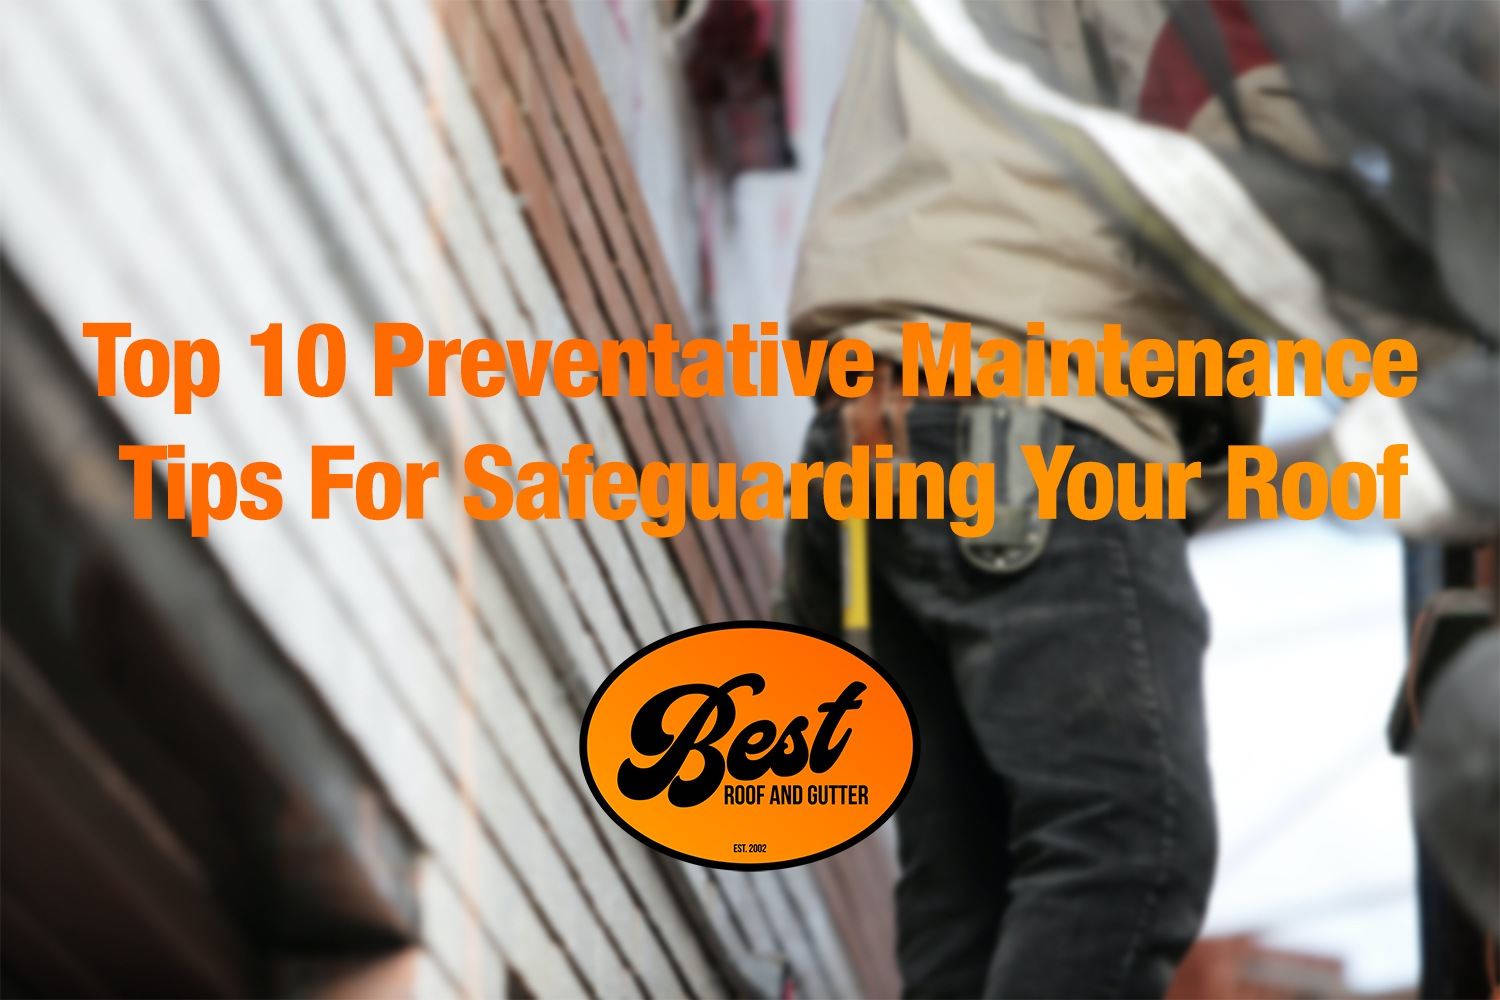 Top 10 Preventative Maintenance Tips For Safeguarding Your Roof